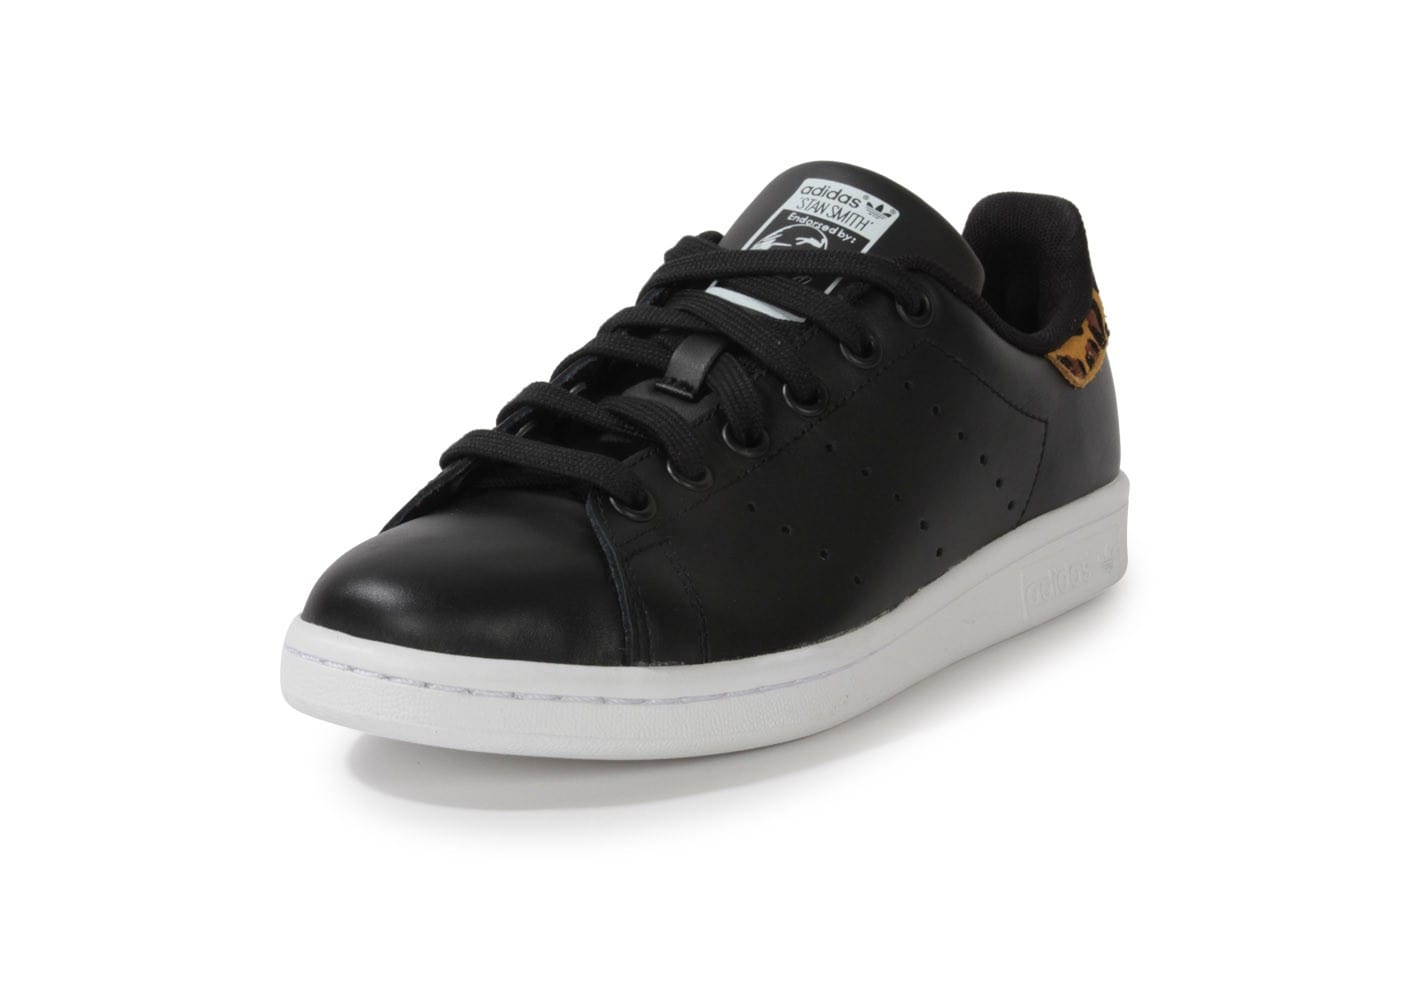 Adidas Smith Noir Chaussure Stan Chaussure Adidas Stan Chaussure Noir Smith 9ID2EH